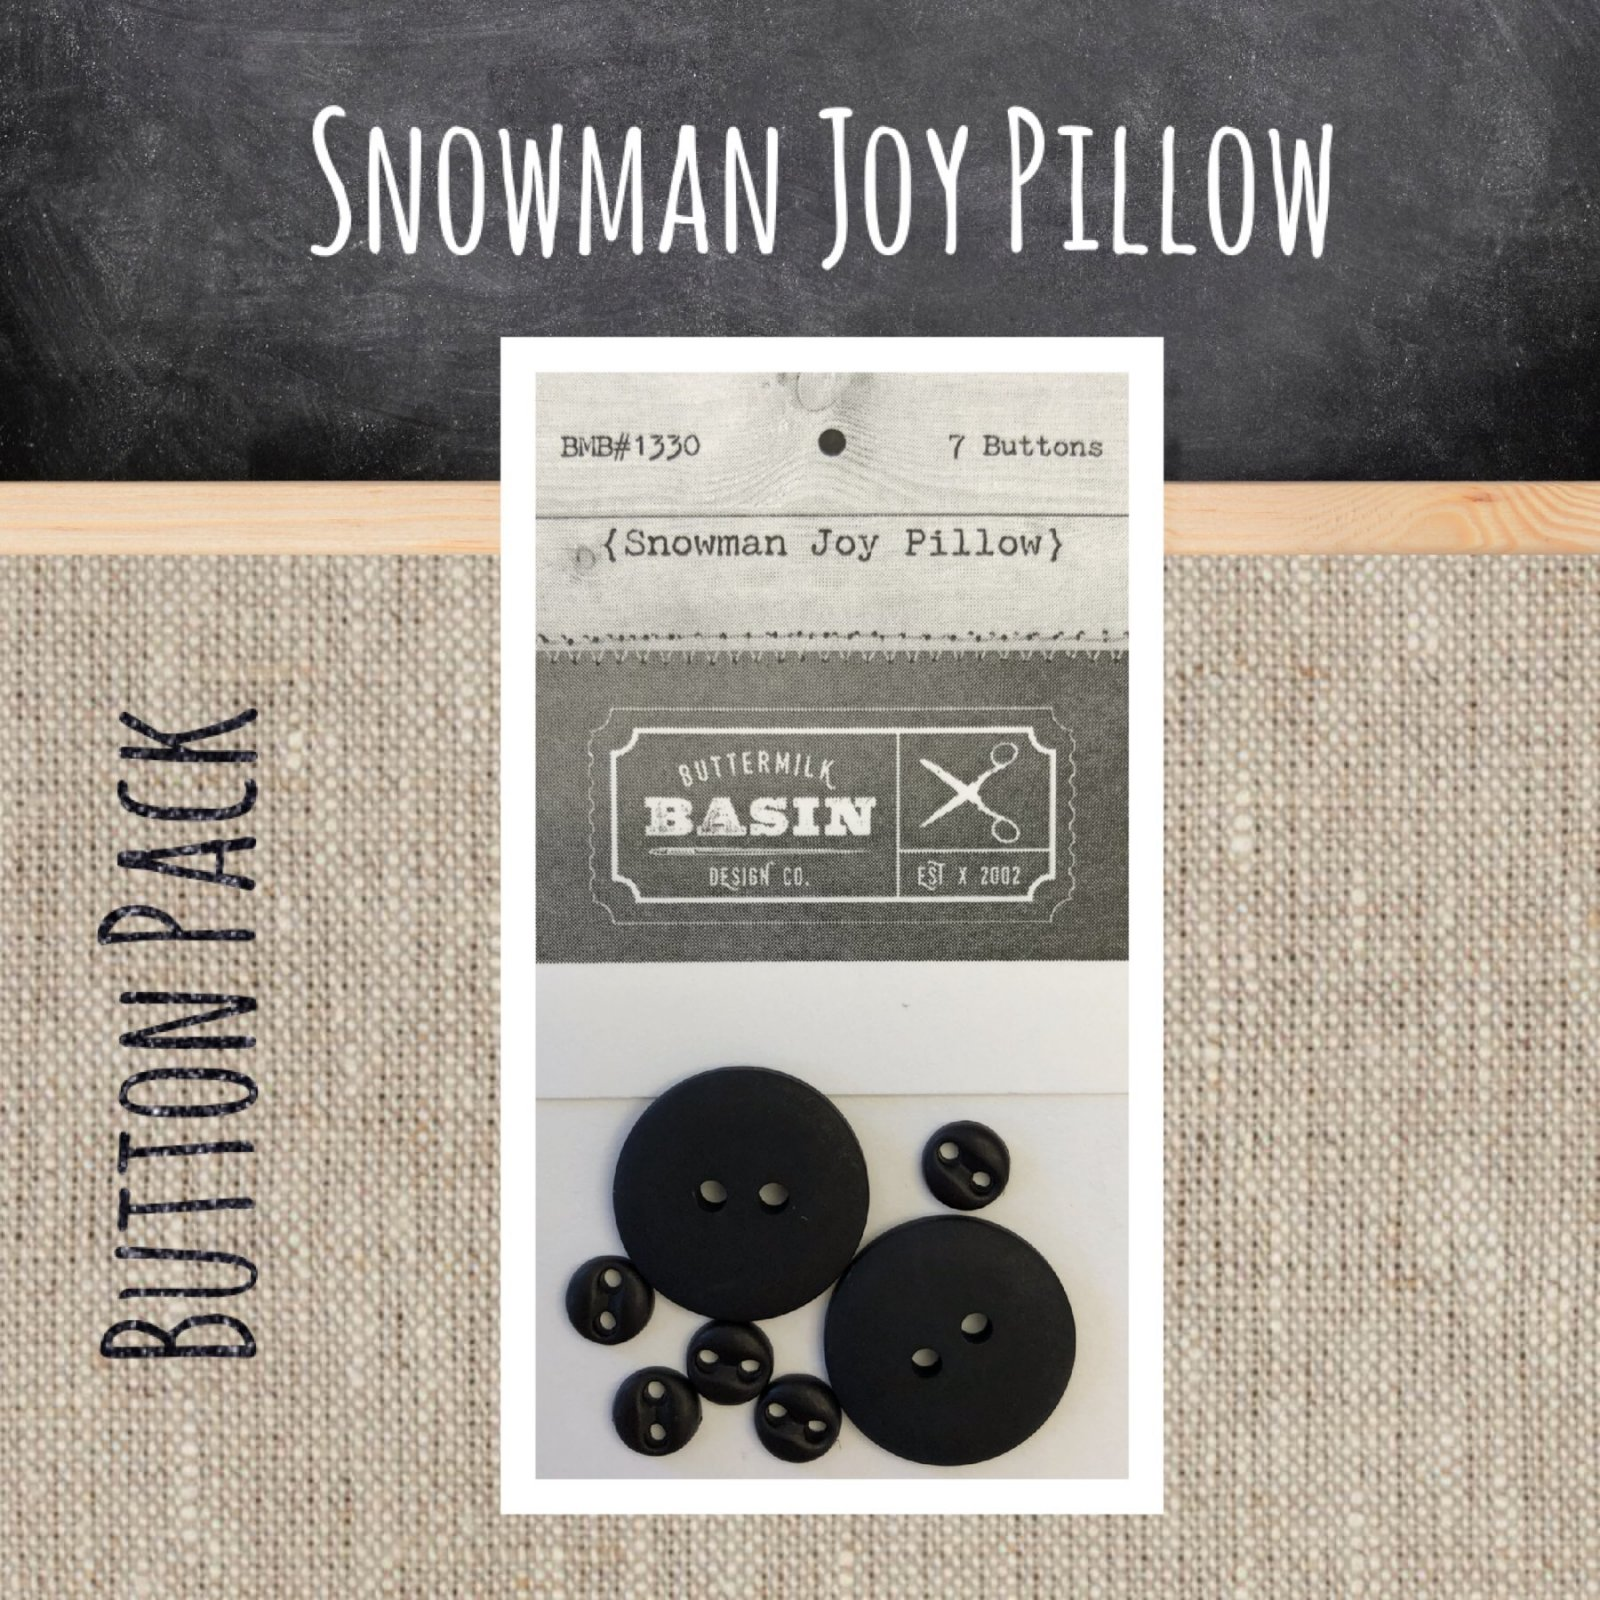 Snowman JOY Pillow BUTTON Pack